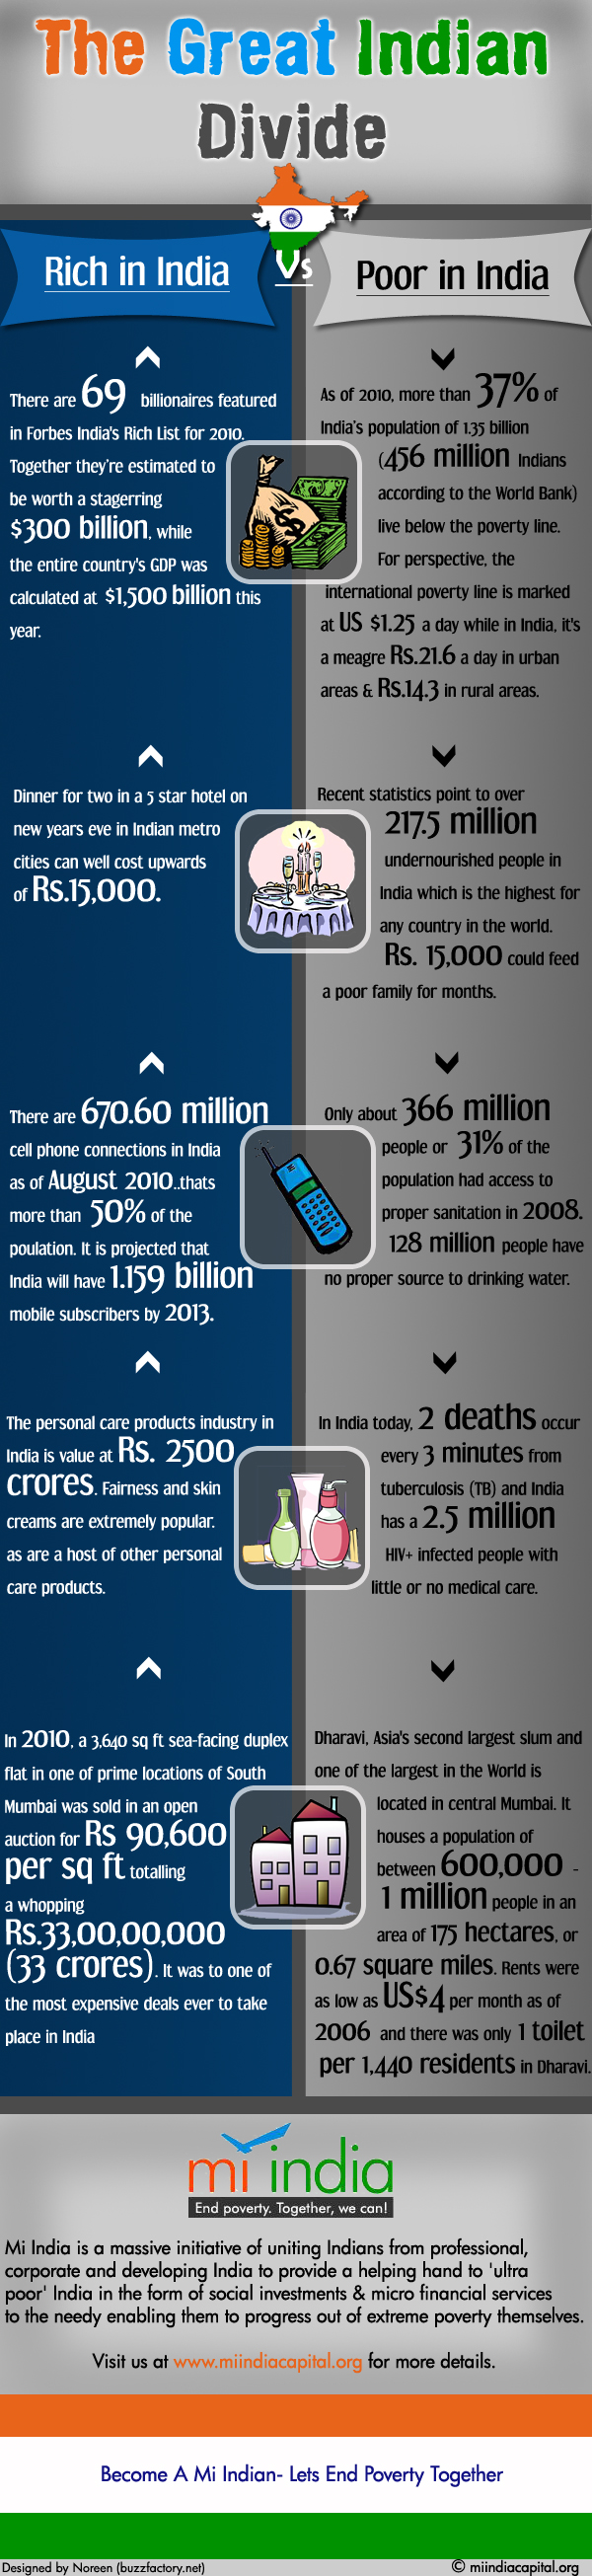 The Great Indian Divide Infographic